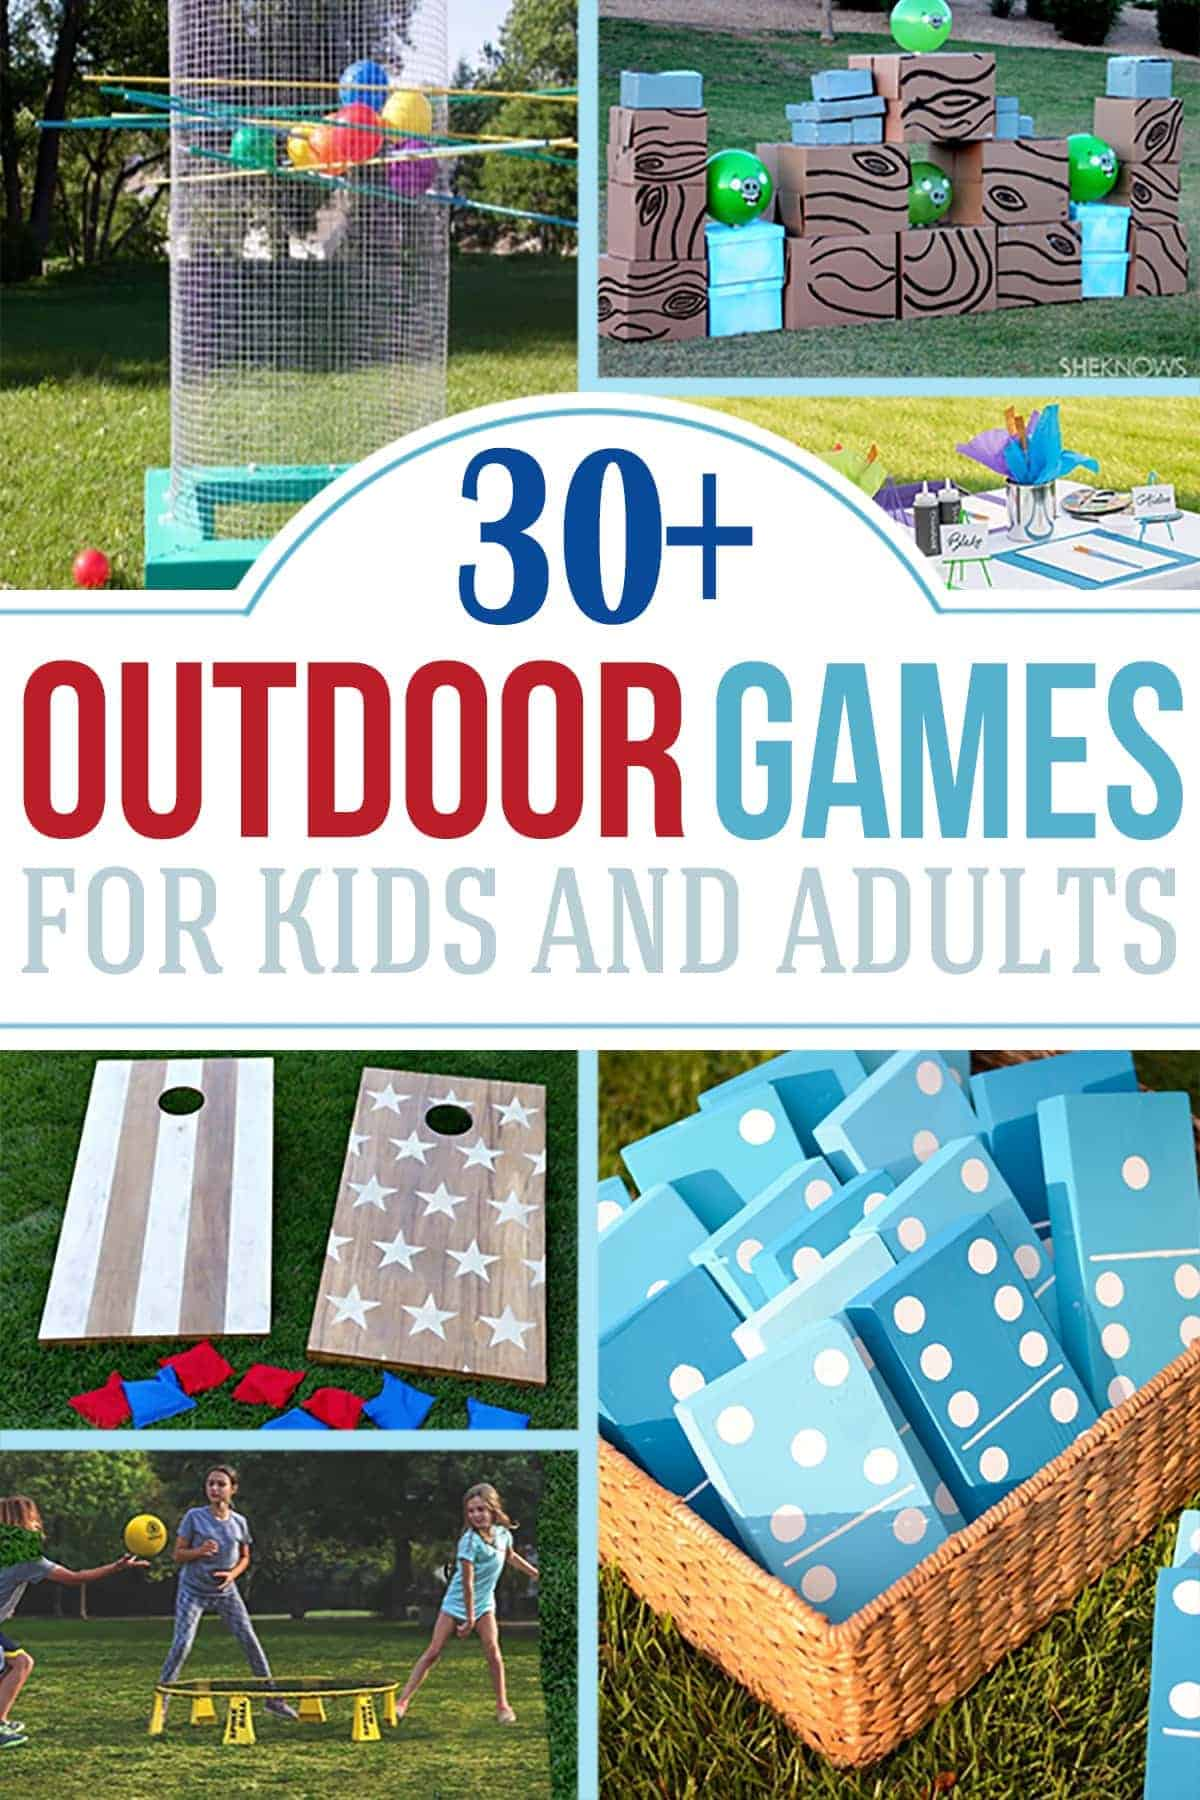 Outdoor Party Games, backyard games, summer fun, summer games, play outside